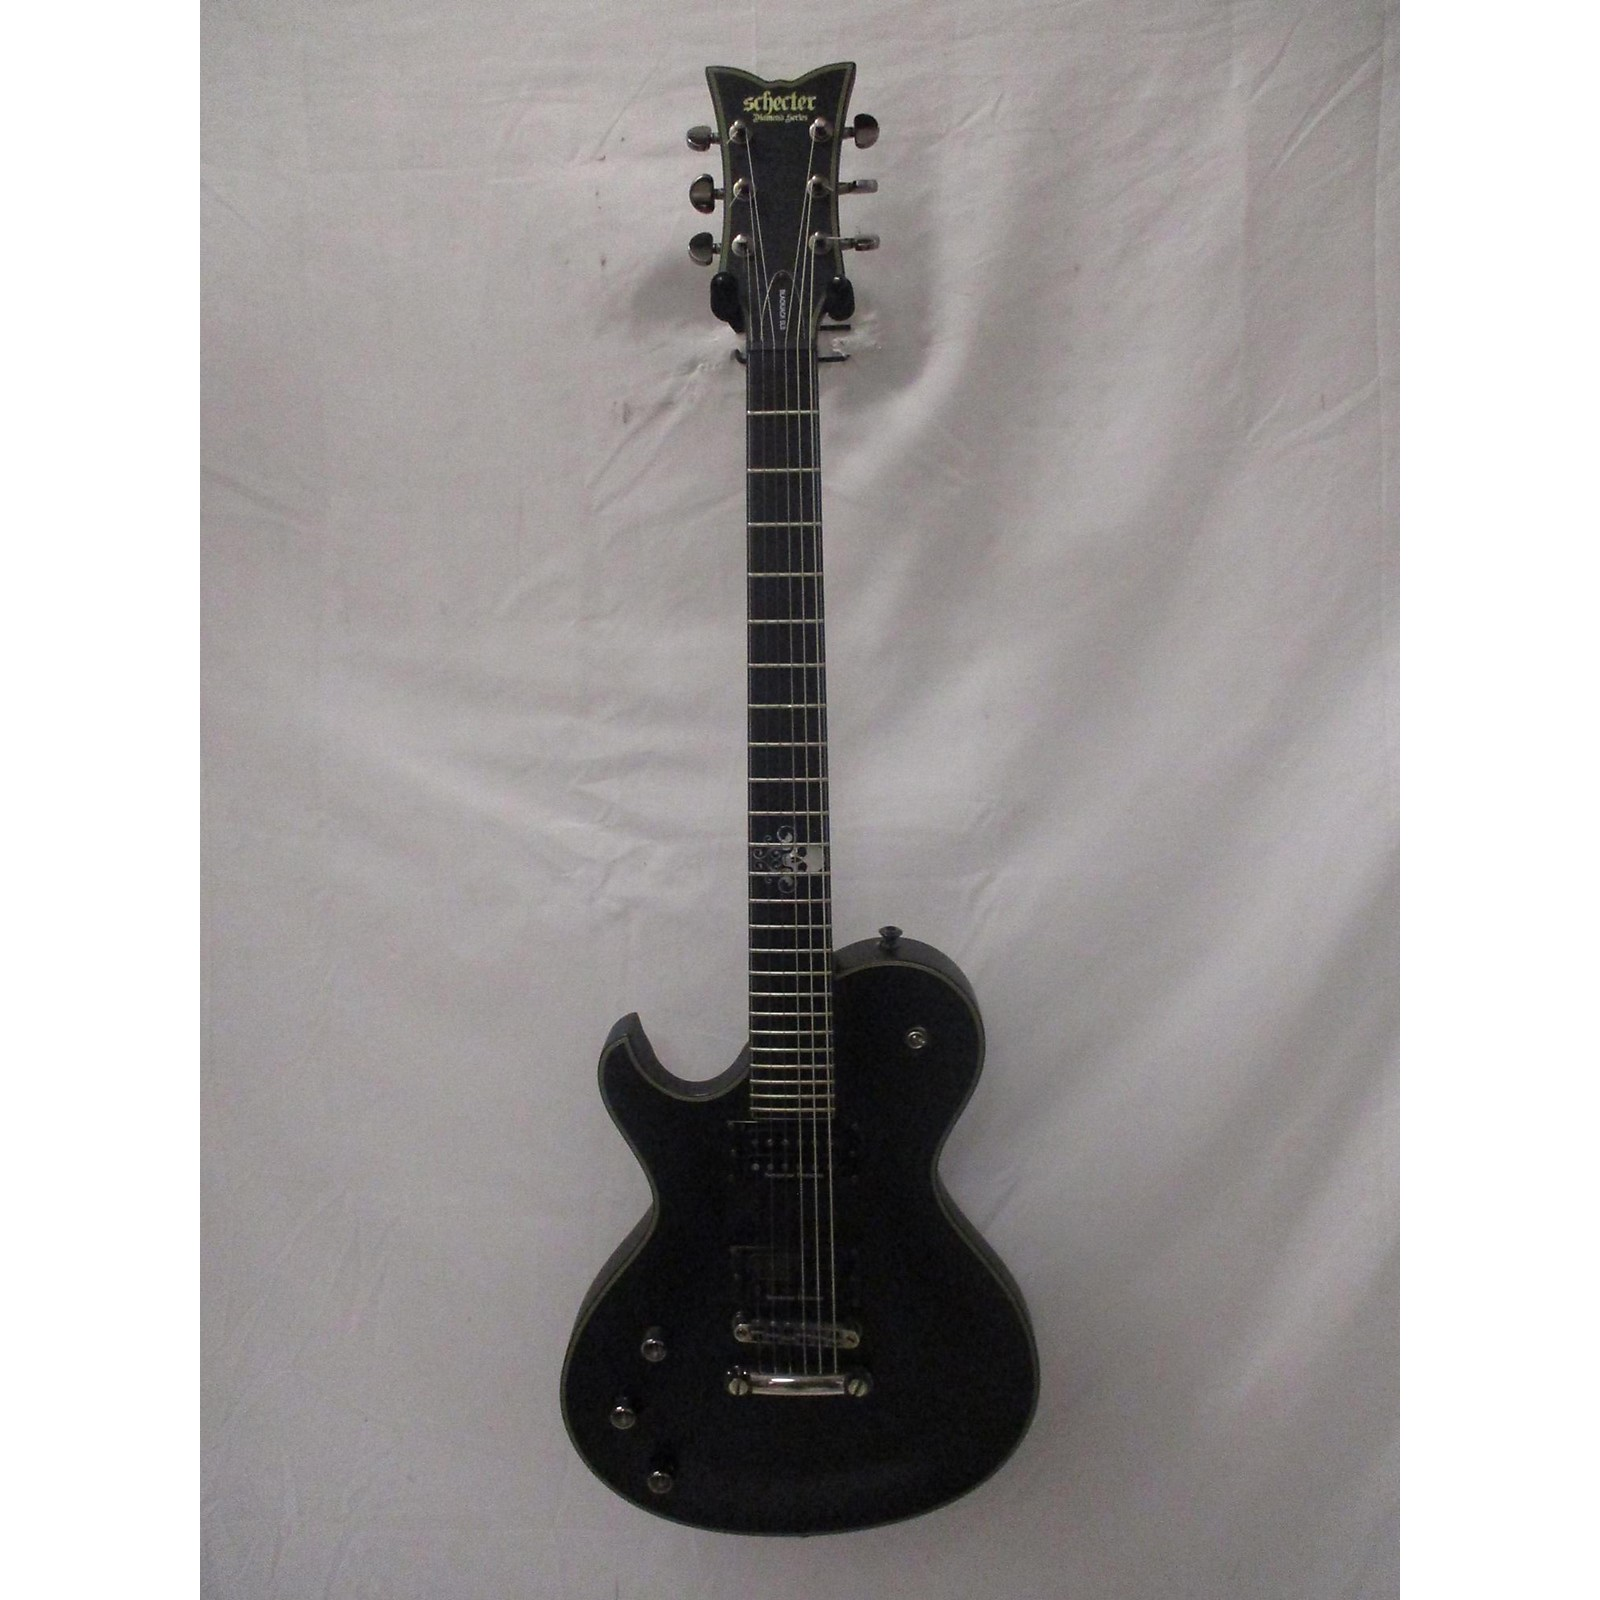 Schecter Guitar Research Blackjack ATX Solo 6 Left Handed Electric Guitar